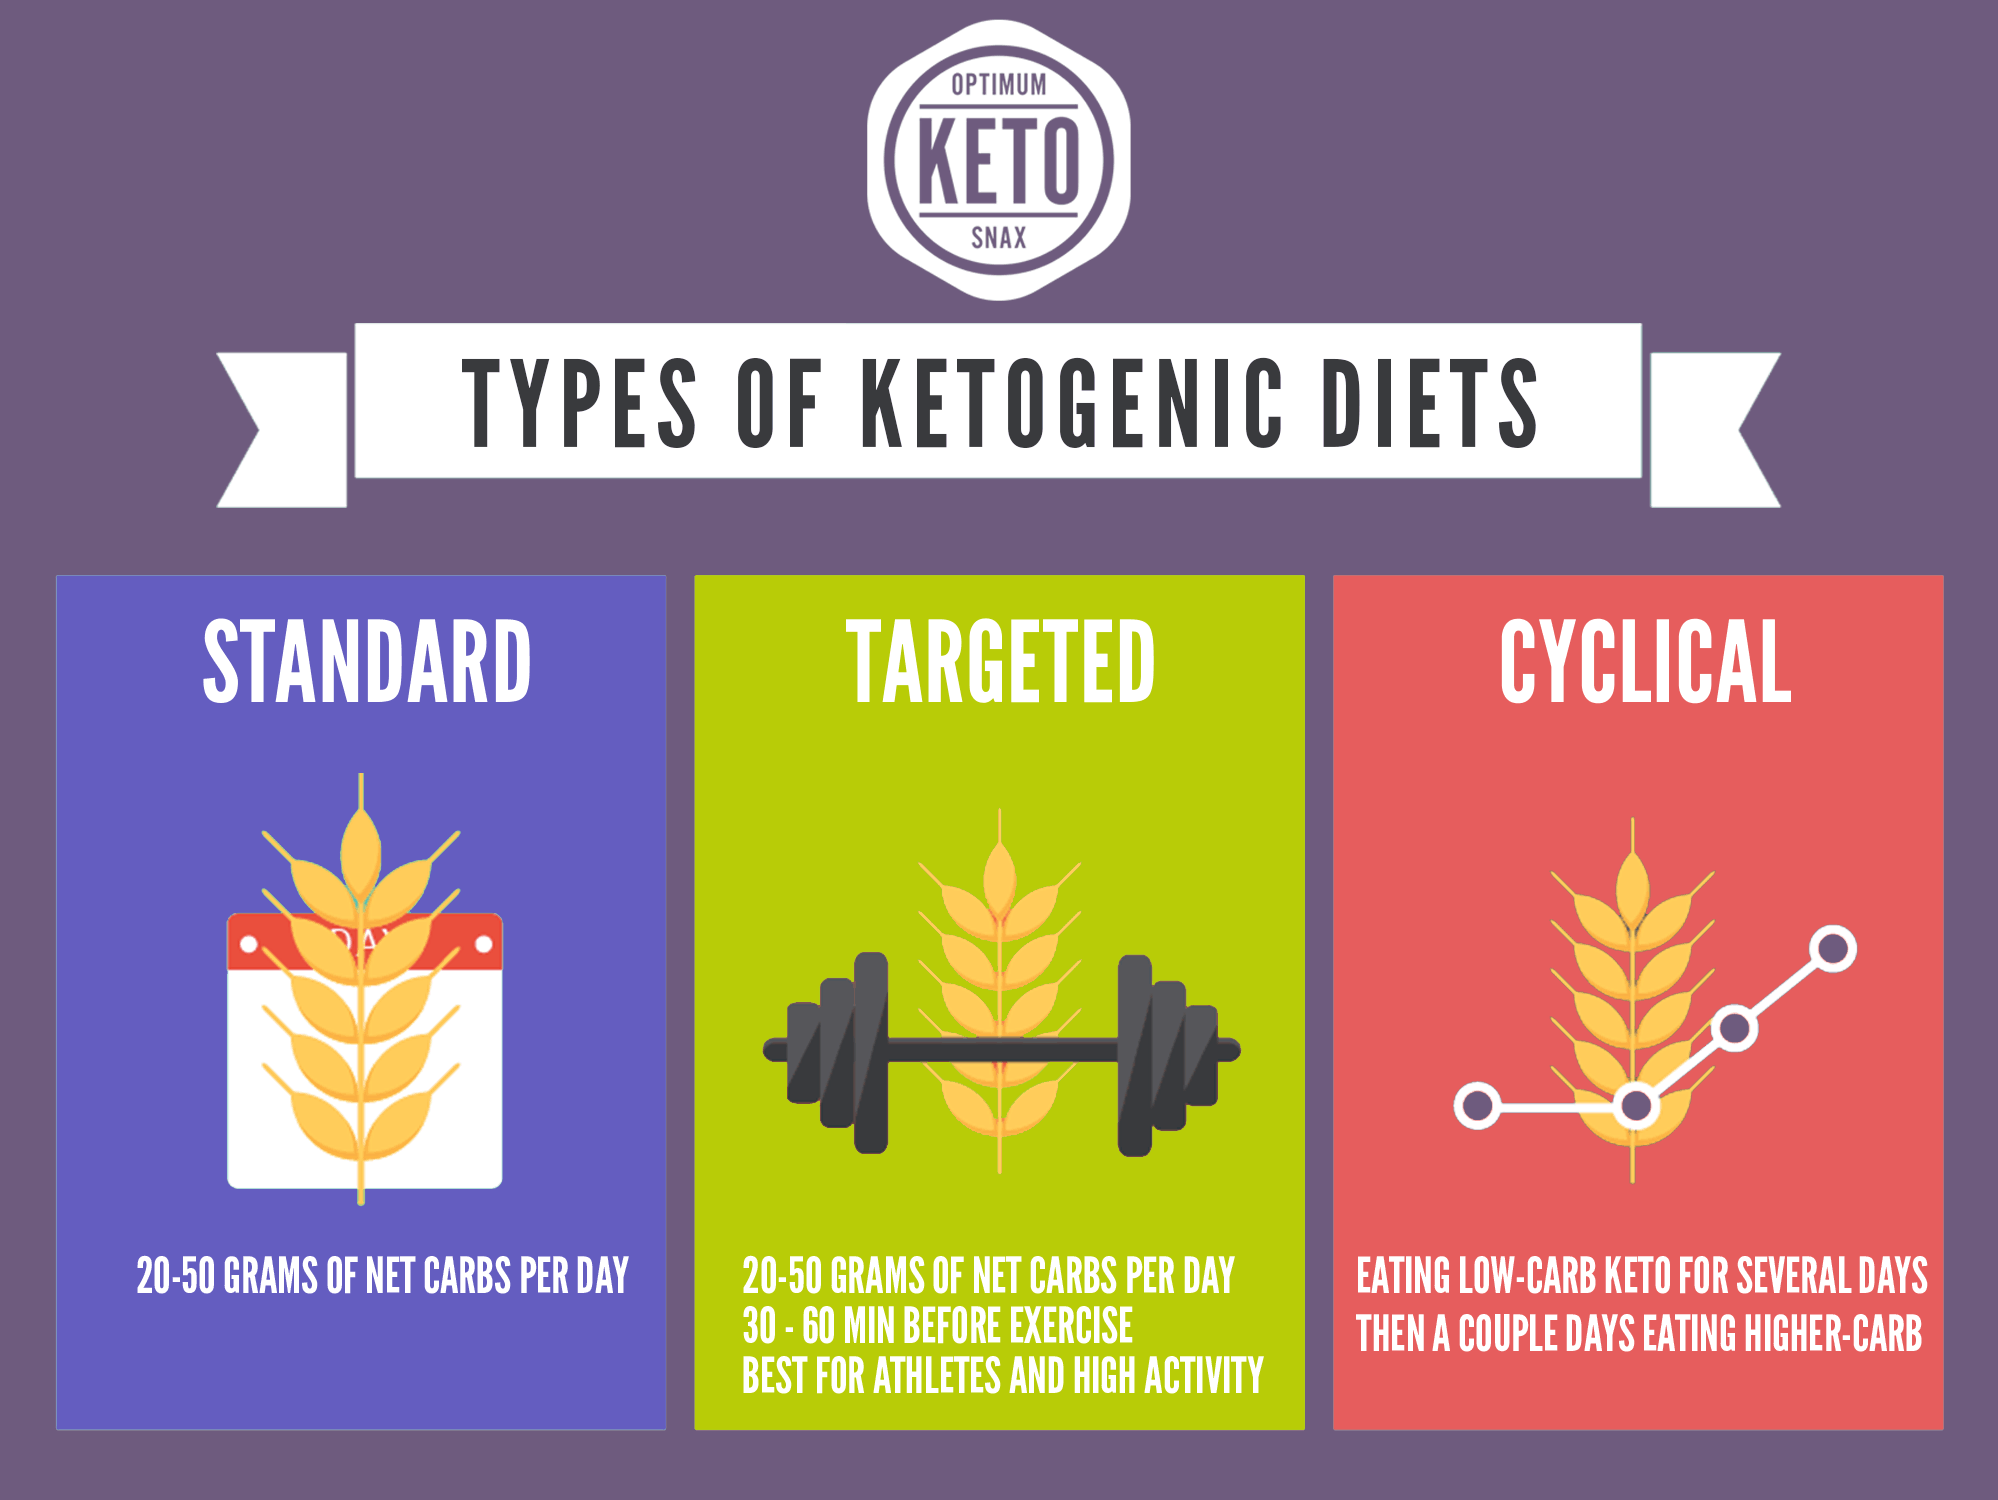 Types-of-Ketogenic-Diets.png